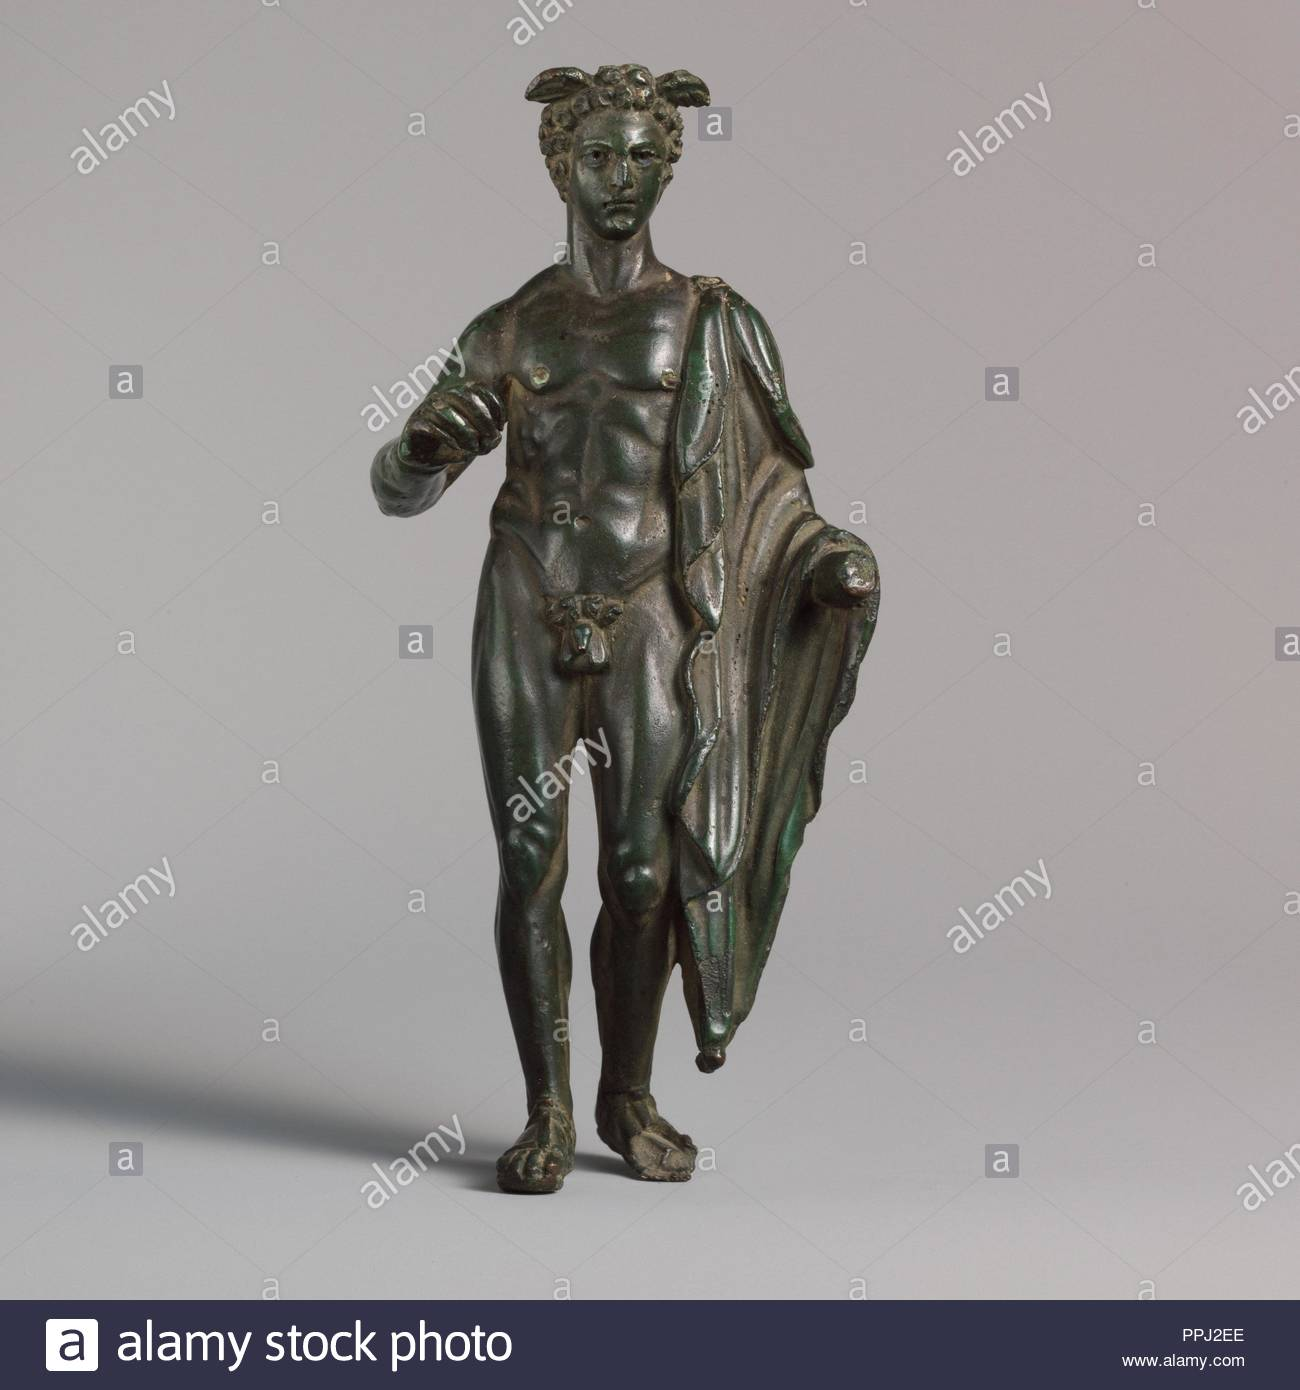 Bronze statuette of Mercury, Early Imperial, 1st century A.D., Roman, Bronze, Overall: 6 3/16 x 2 3/4 x 1 7/8 in. (15.7 x 6.9 x 4.8 cm), Bronzes, He stands with his weight resting on the right leg, with the left foot drawn back. - Stock Image